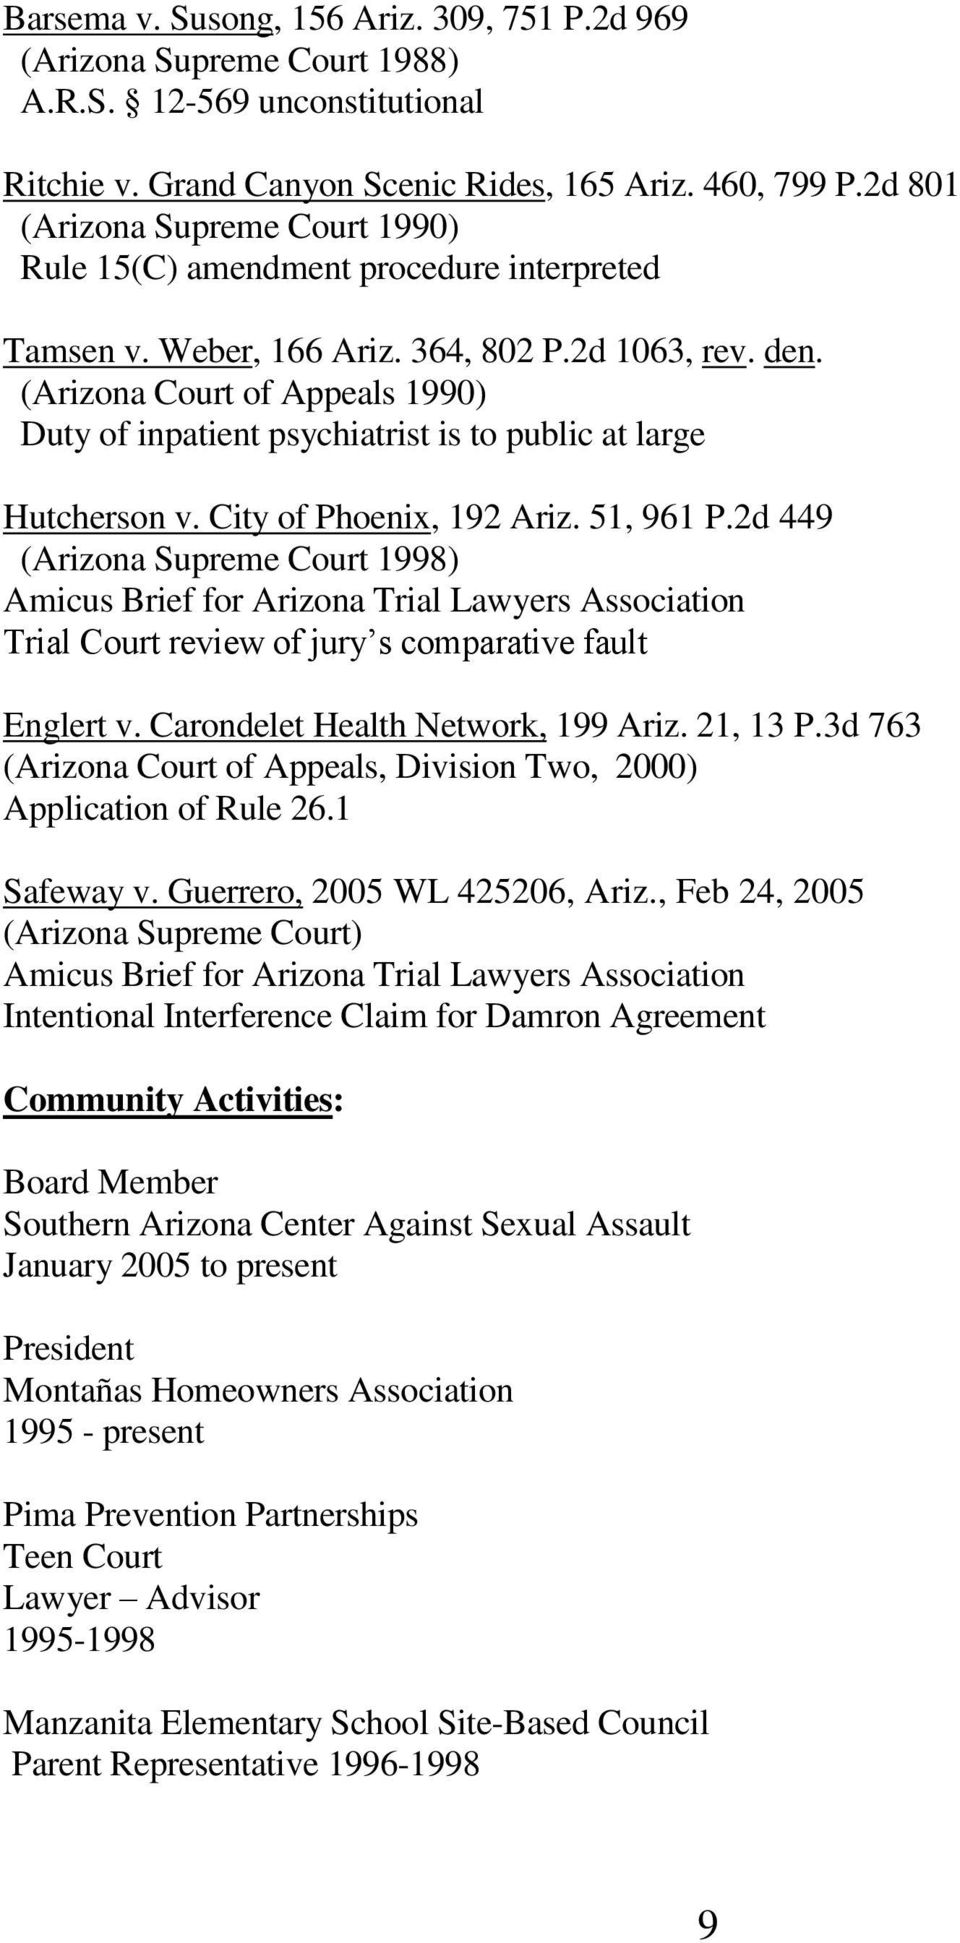 (Arizona Court of Appeals 1990) Duty of inpatient psychiatrist is to public at large Hutcherson v. City of Phoenix, 192 Ariz. 51, 961 P.